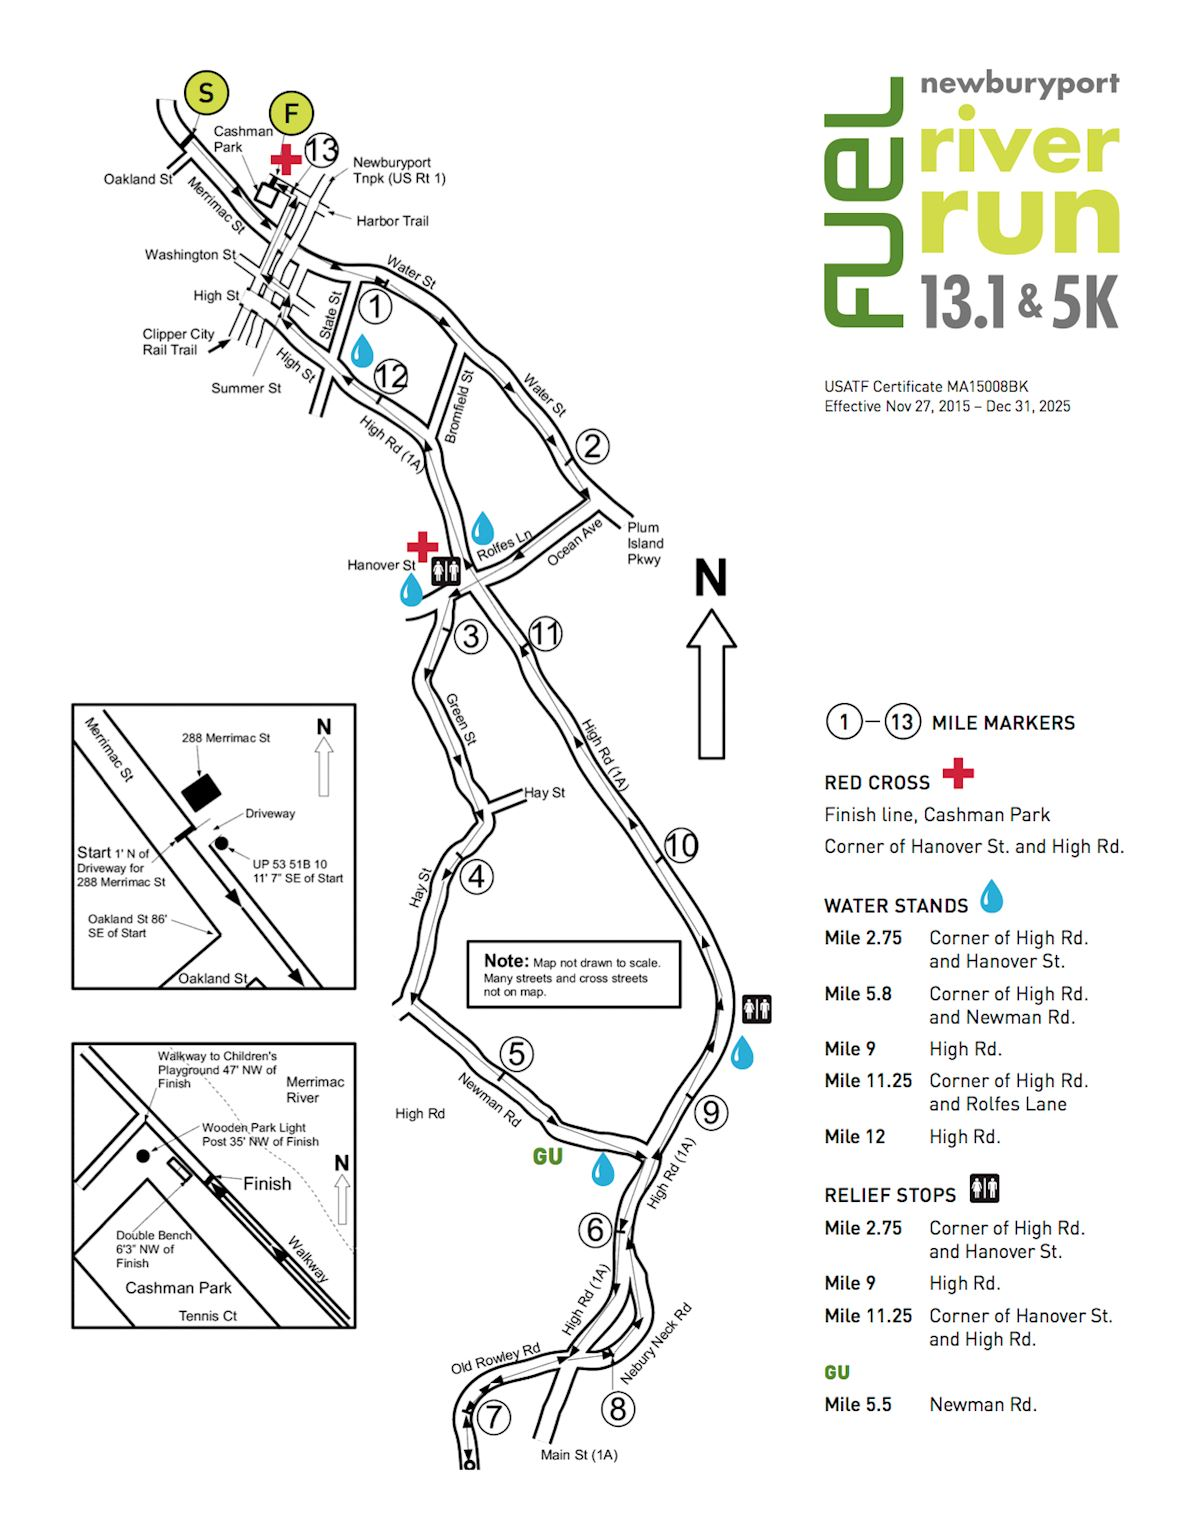 Newburyport River Run Half Marathon Mappa del percorso